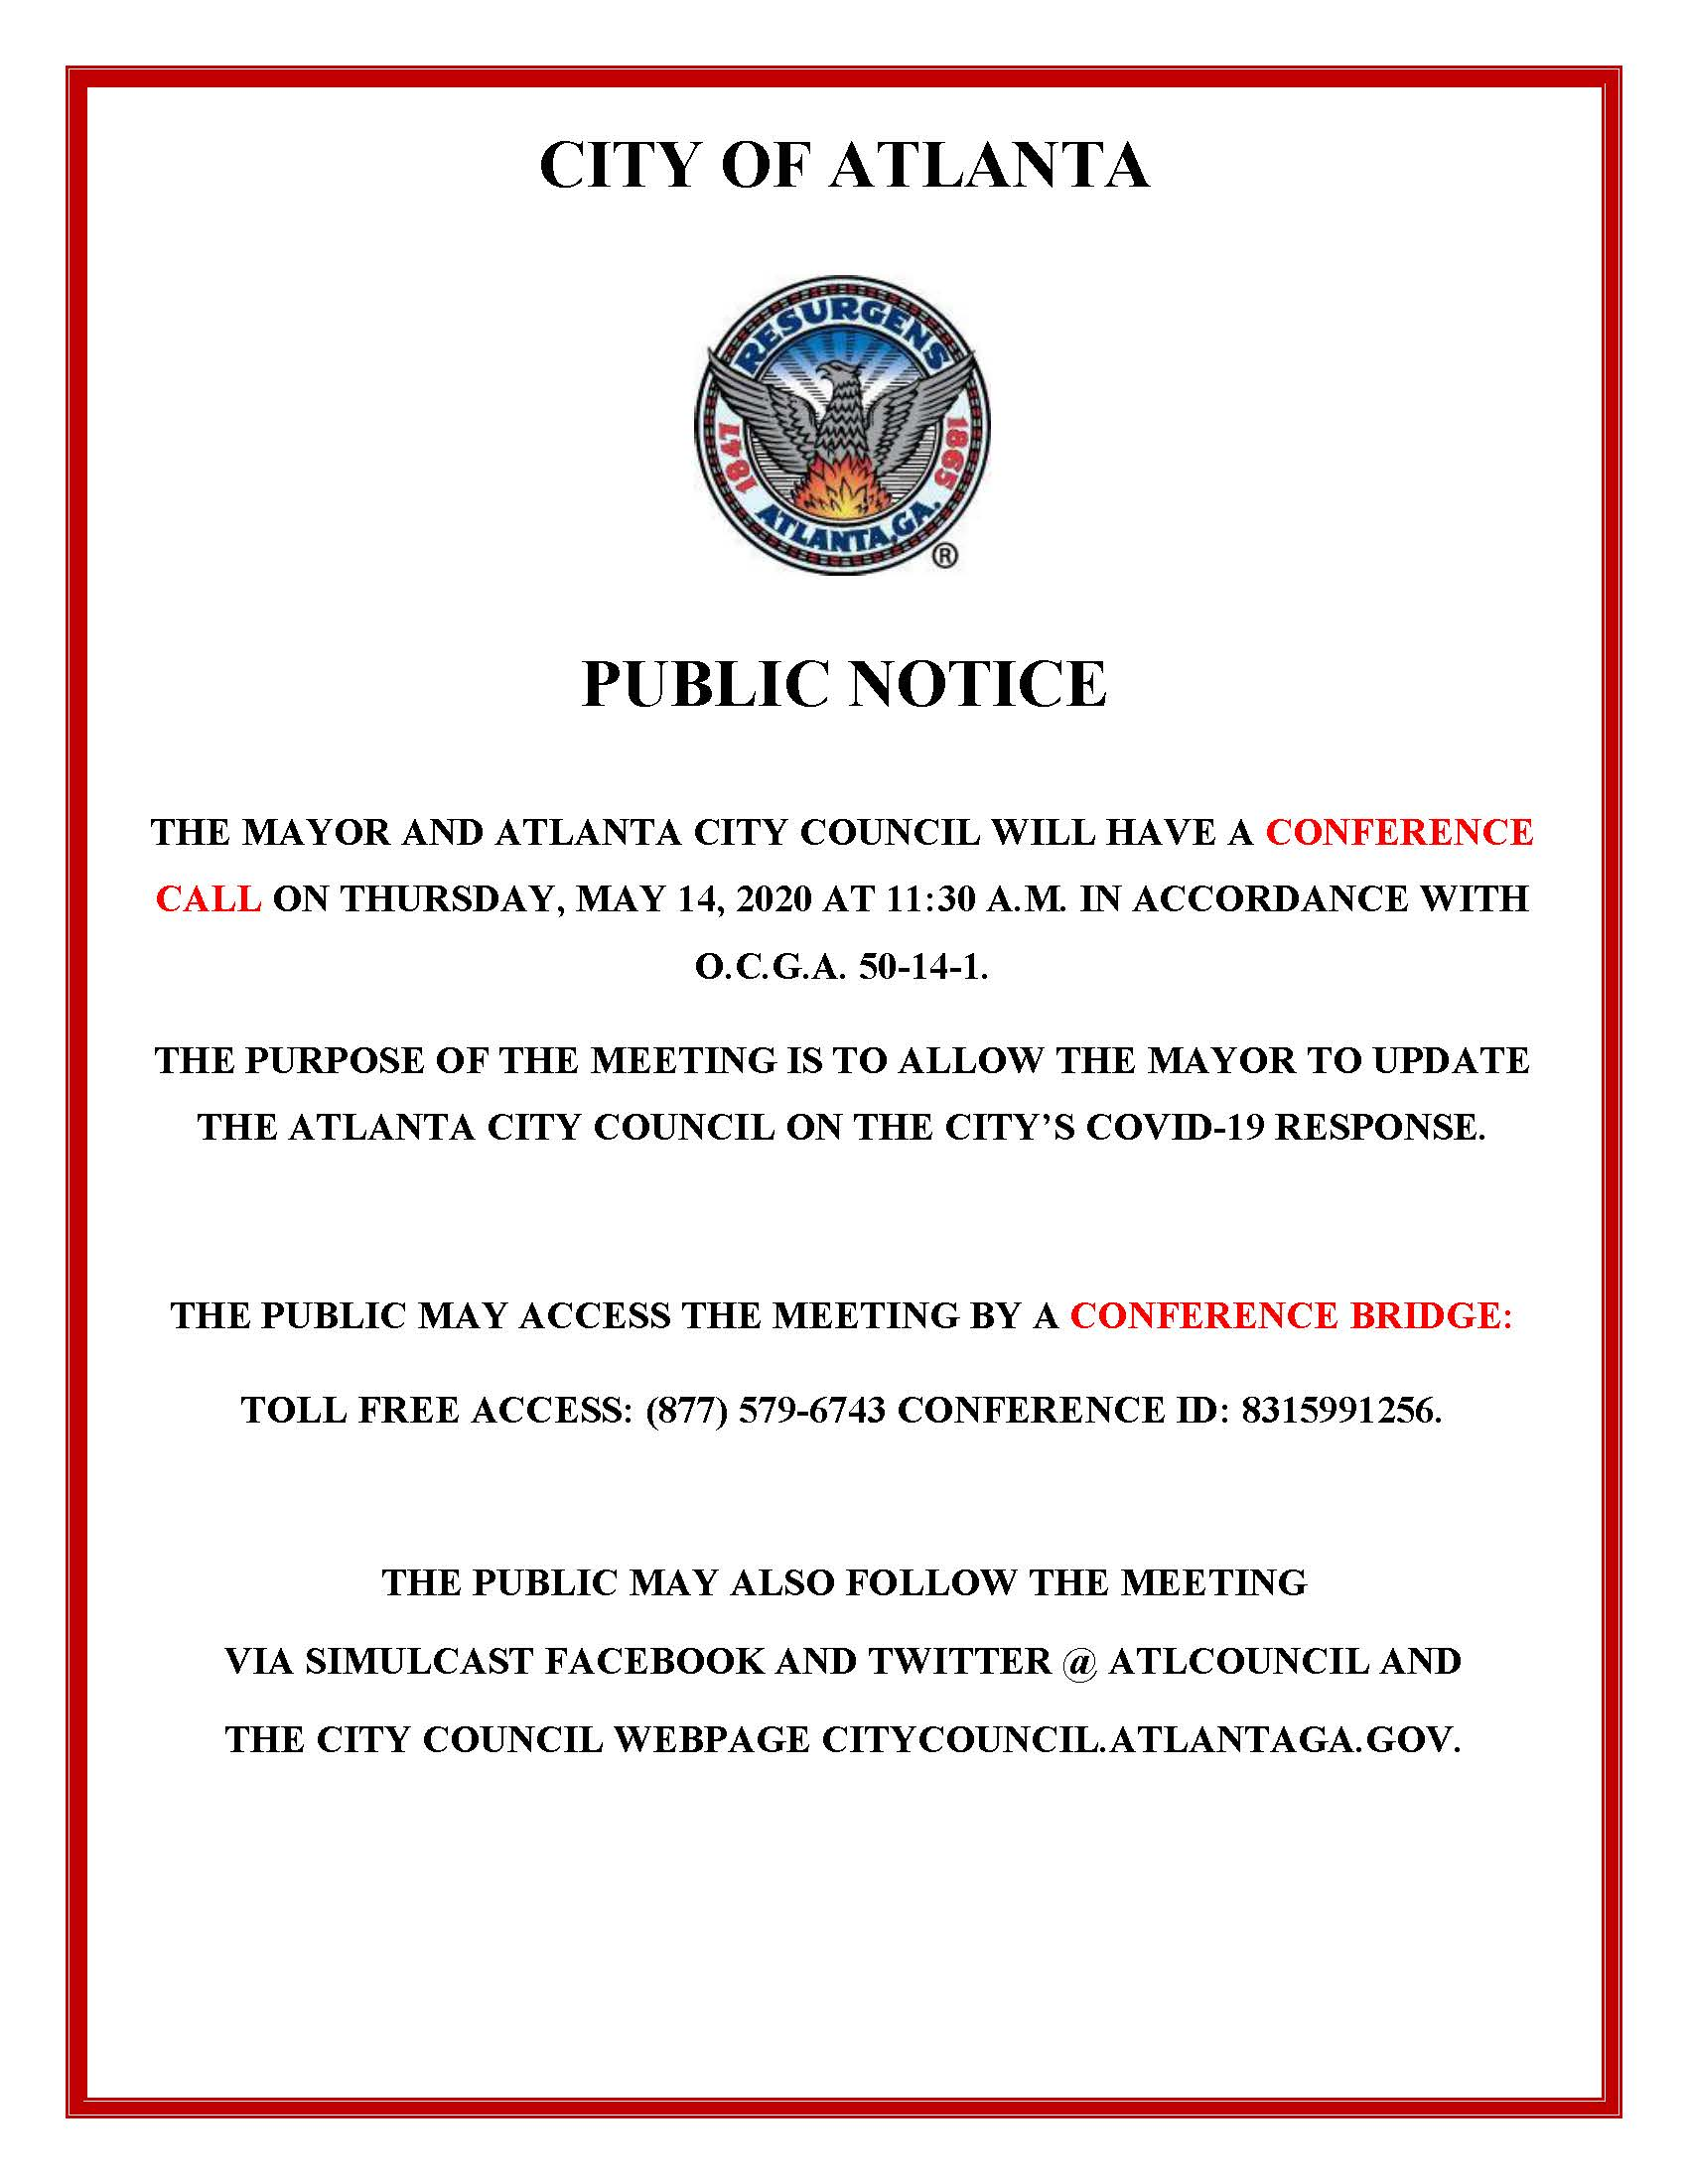 5.14.20 - Mayor Conference Call with ACC Public Notice 5.14.2020